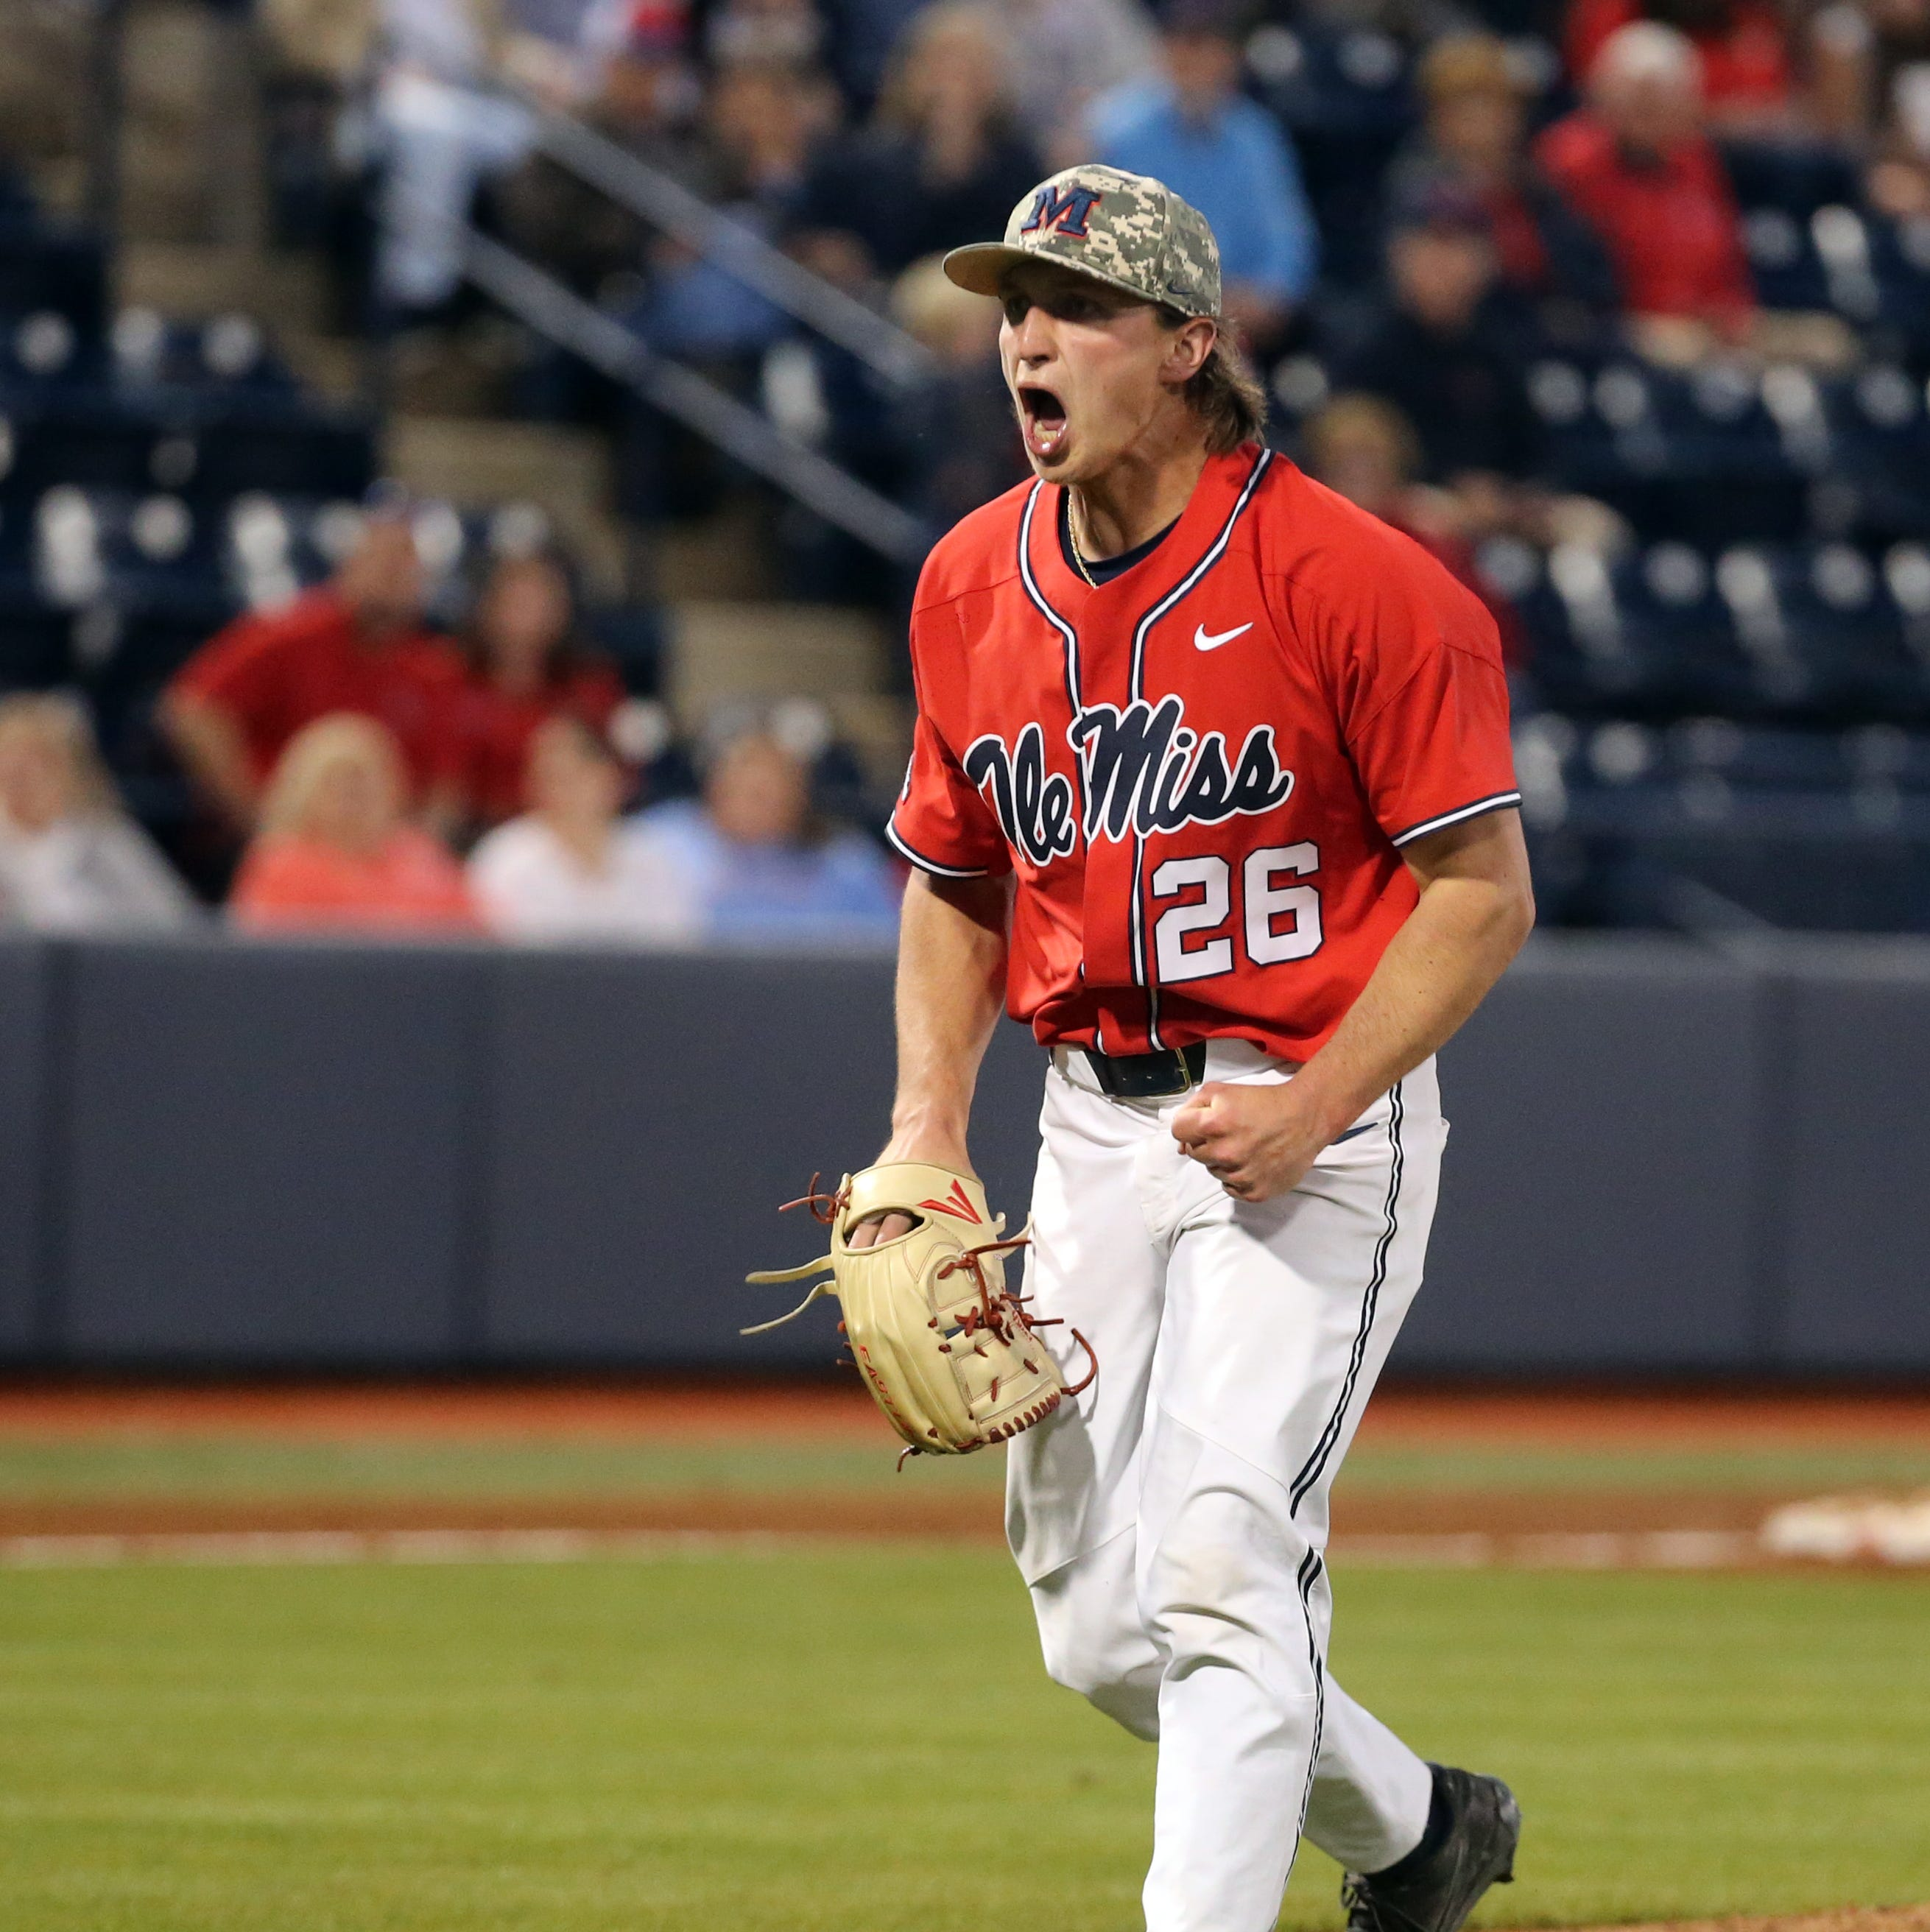 Ole Miss evens series with No. 9 LSU behind strong pitching performance, two big HRs